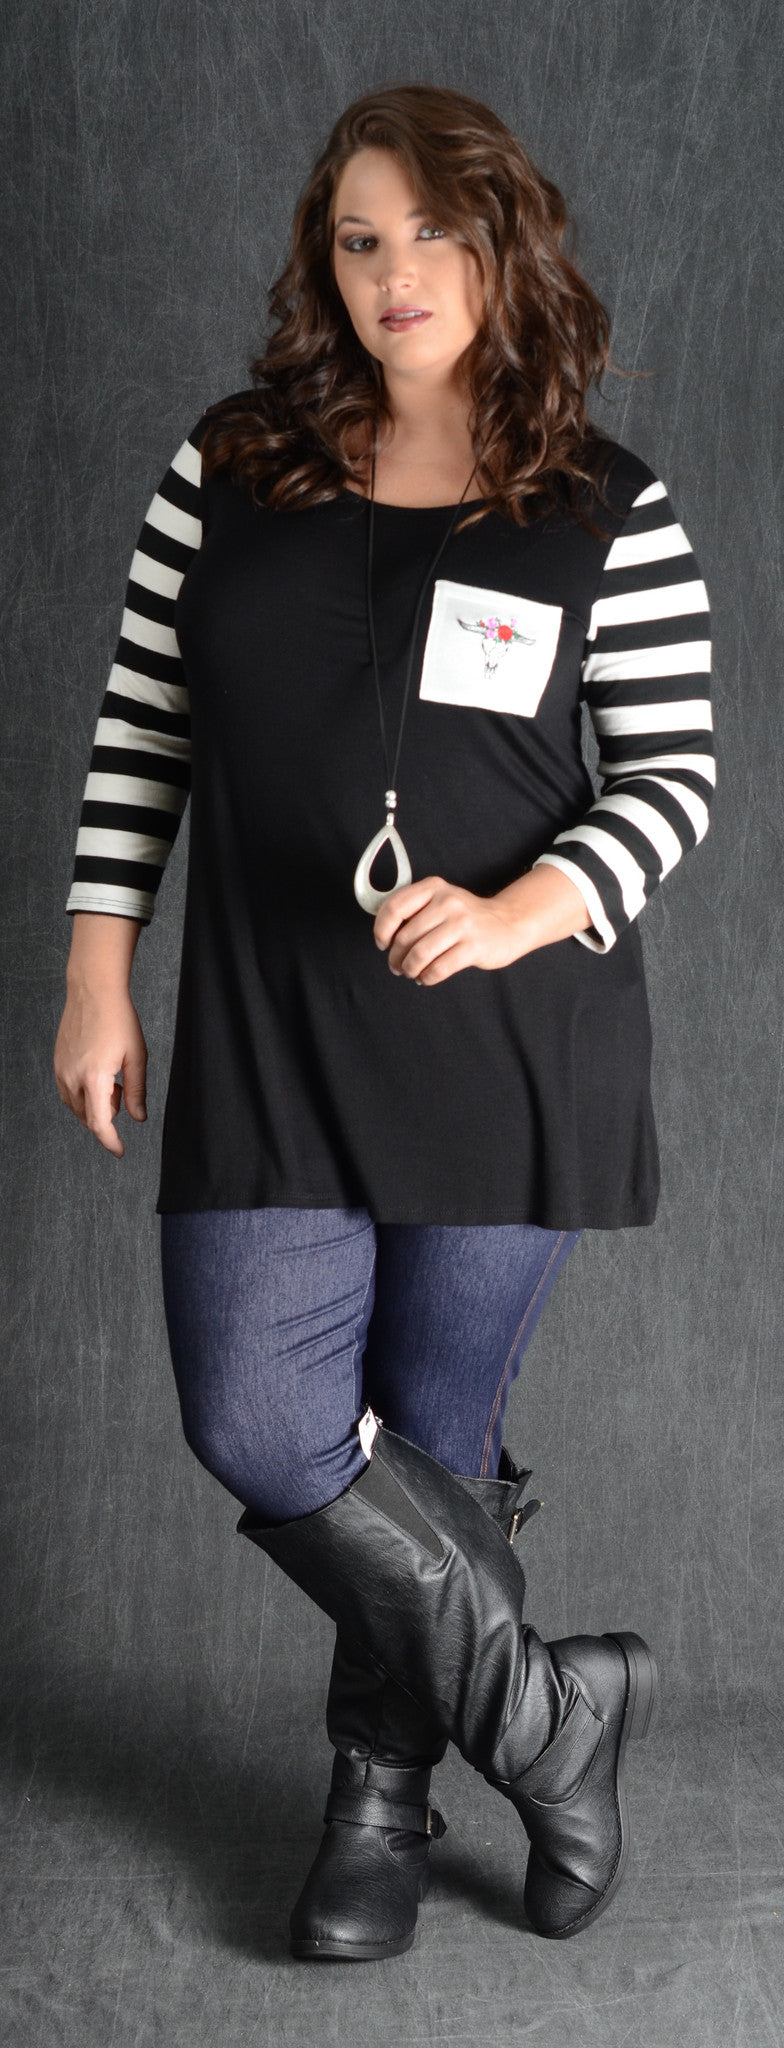 Black & Stripe Bullhead Pocket Top - www.mycurvystore.com - Curvy Boutique - Plus Size